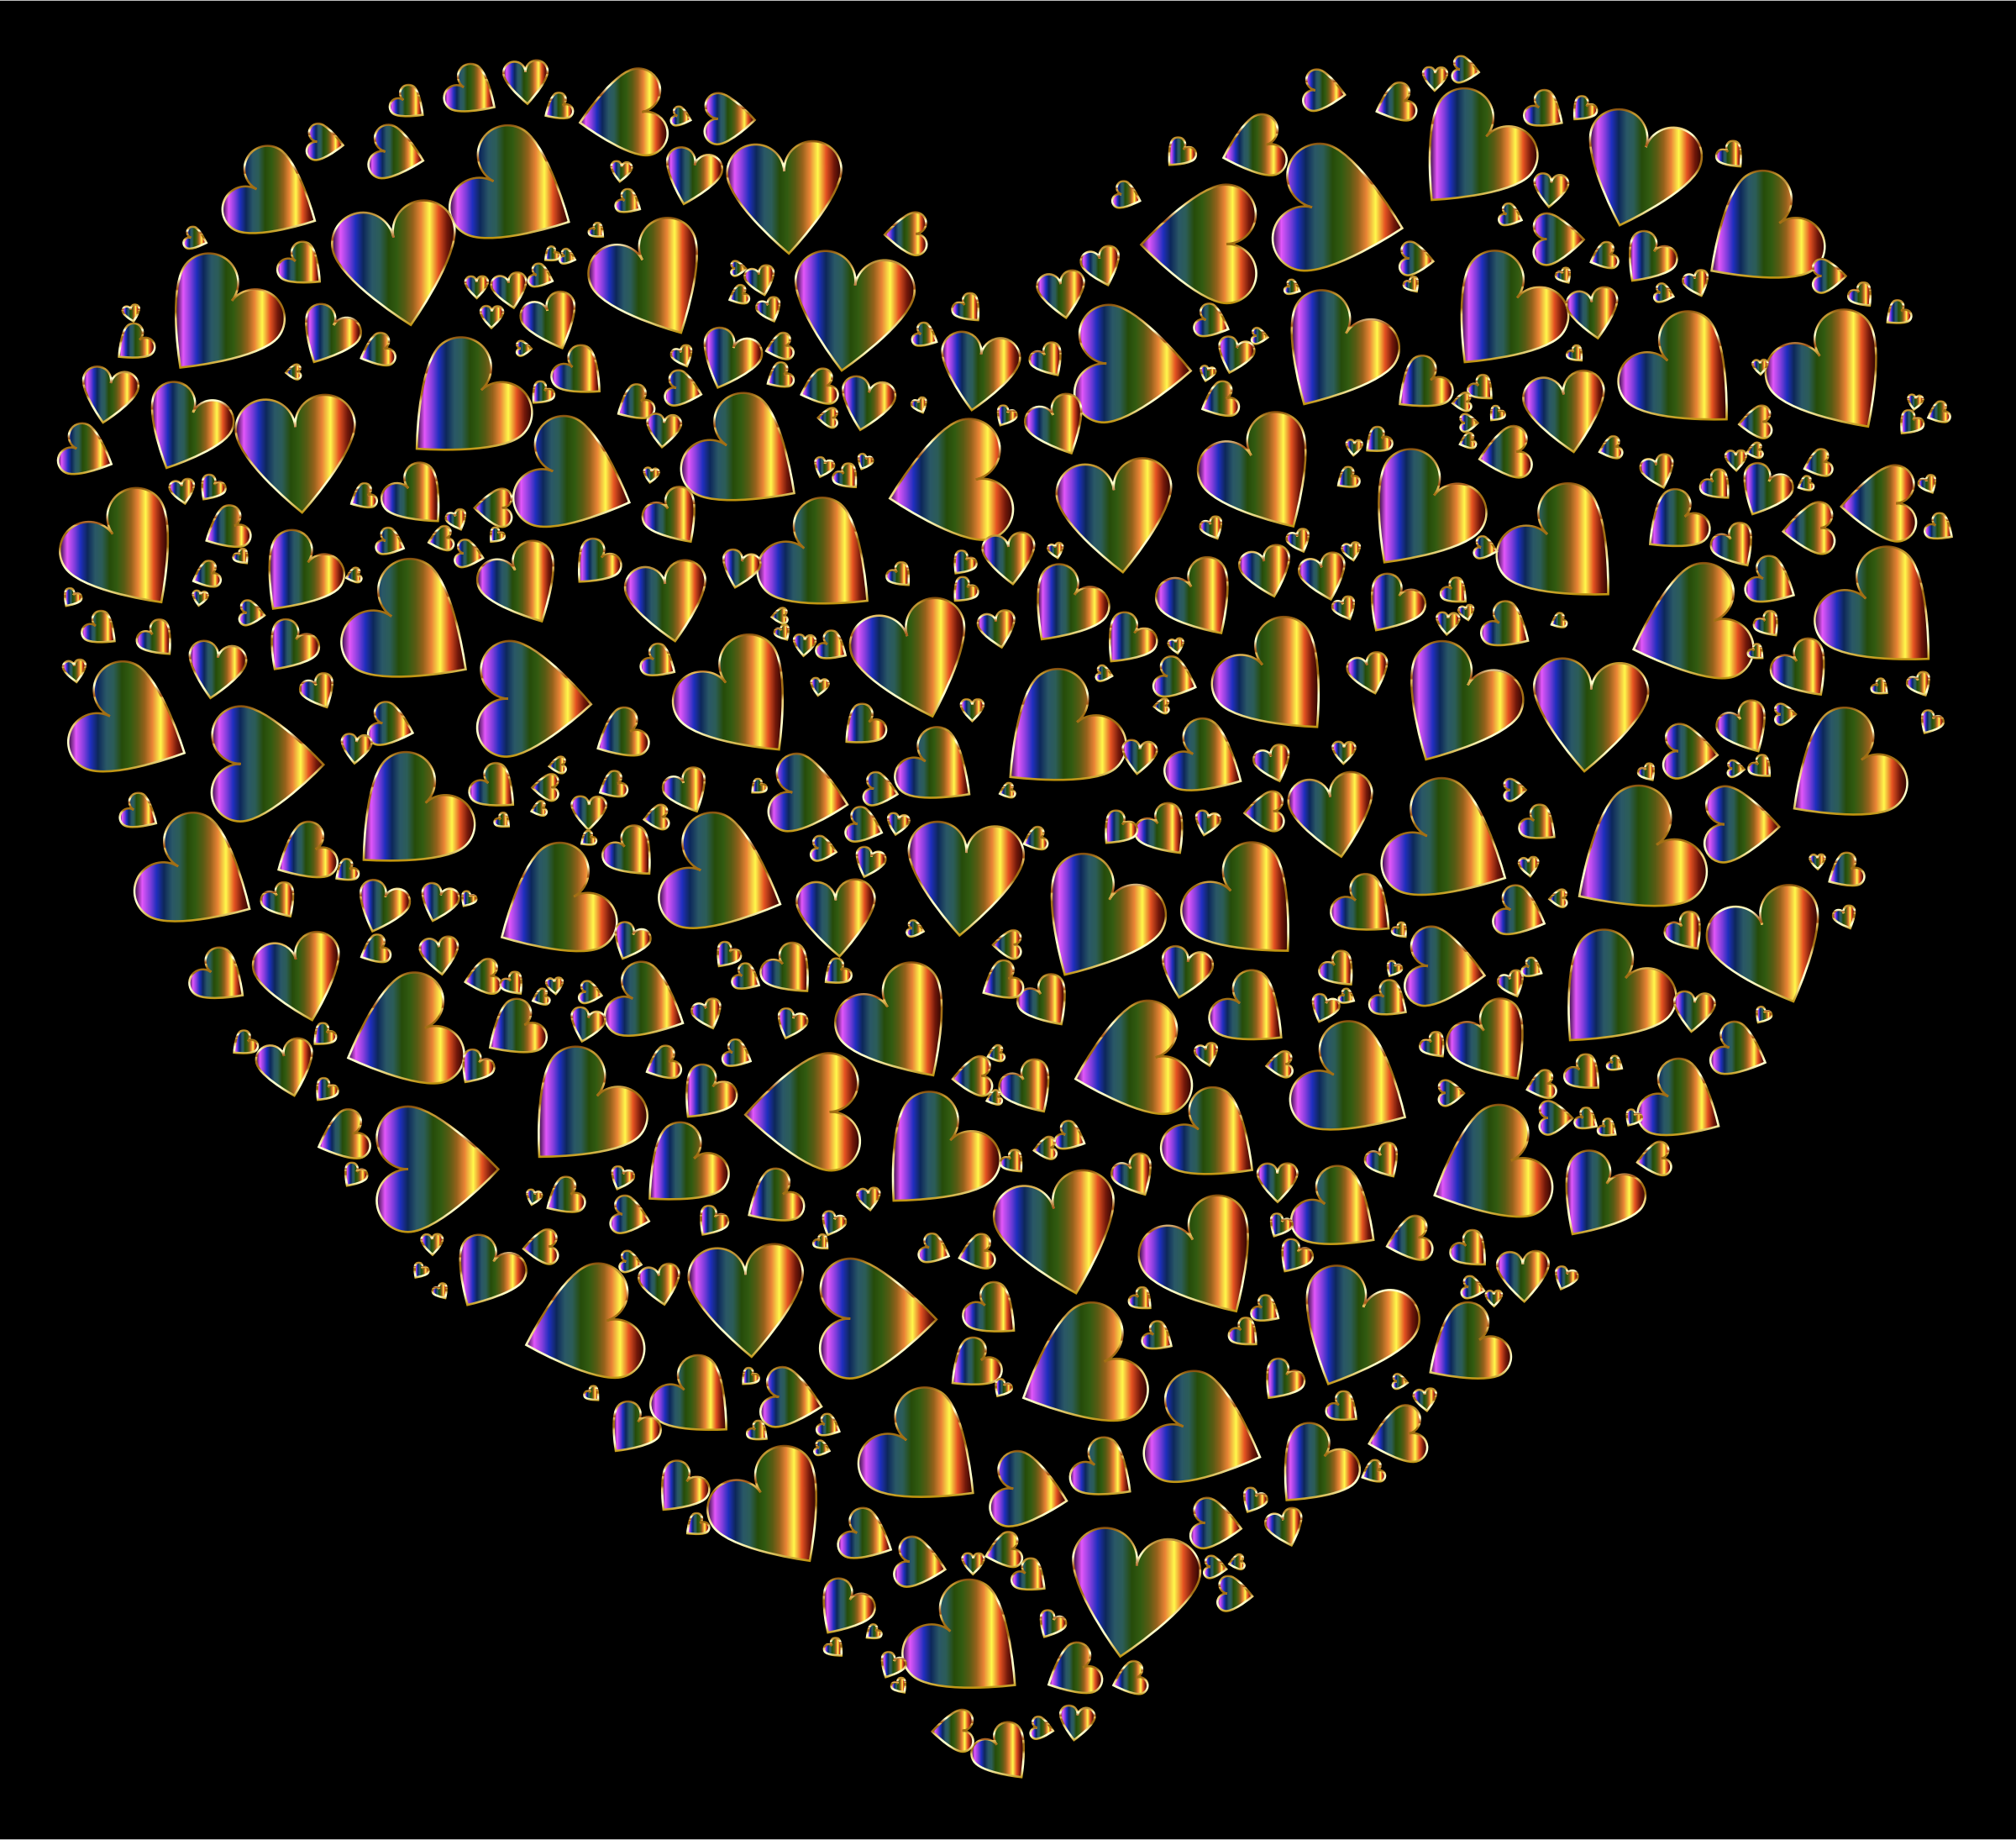 Chaotic Colorful Heart Fractal  10 by GDJ